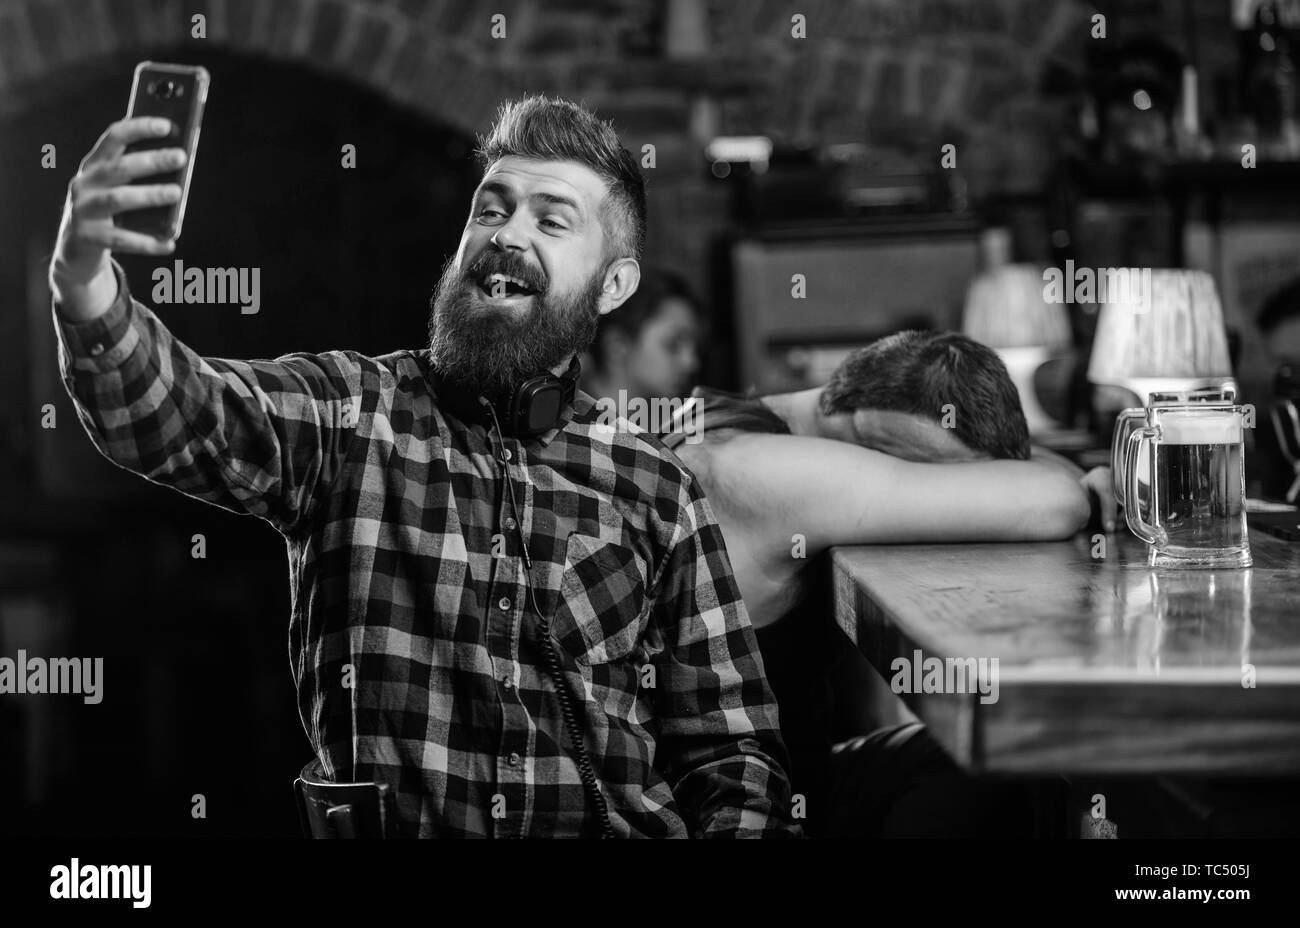 Taking selfie concept. Online communication. Send selfie to friends social networks. Man in bar drinking beer. Take selfie photo to remember great evening in pub. Man bearded hipster hold smartphone. - Stock Image